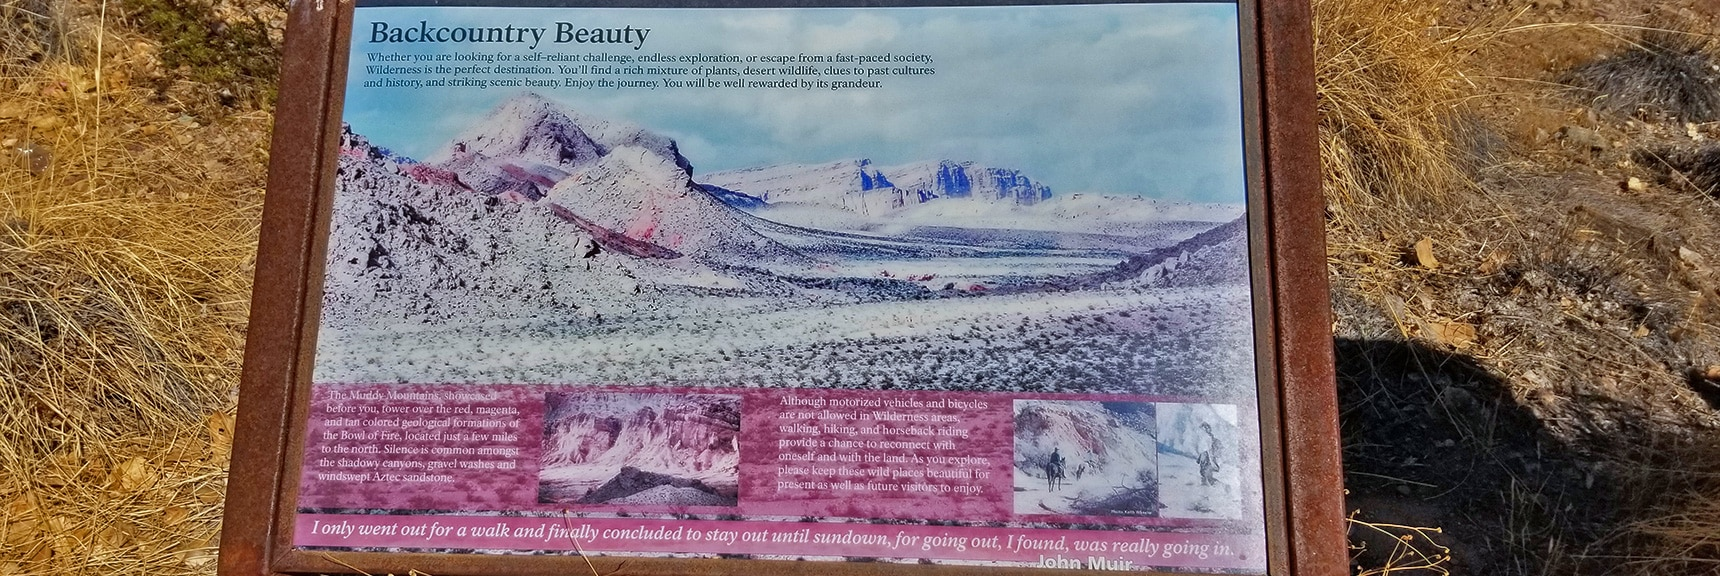 Interpretive Display of Wonders of Back Country Around Callville Bay   Callville Summit Trail   Lake Mead National Recreation Area, Nevada